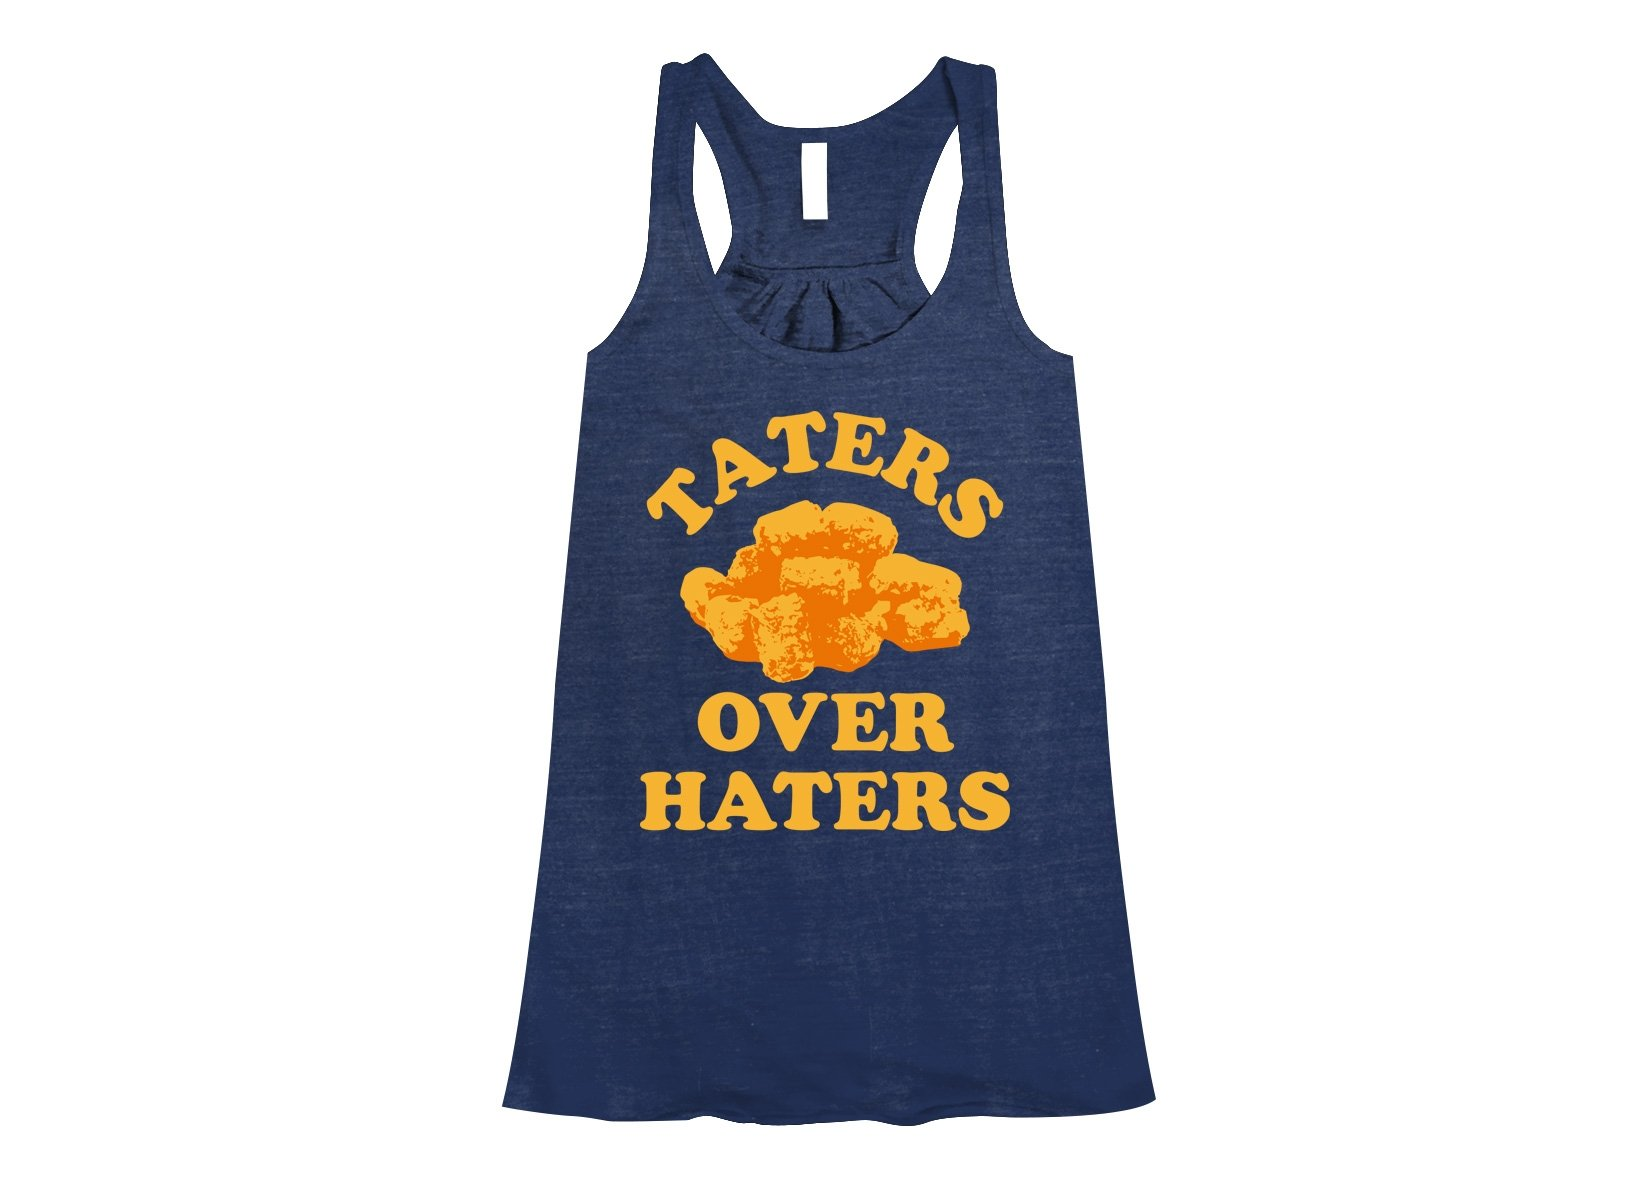 Taters Over Haters on Womens Tanks T-Shirt